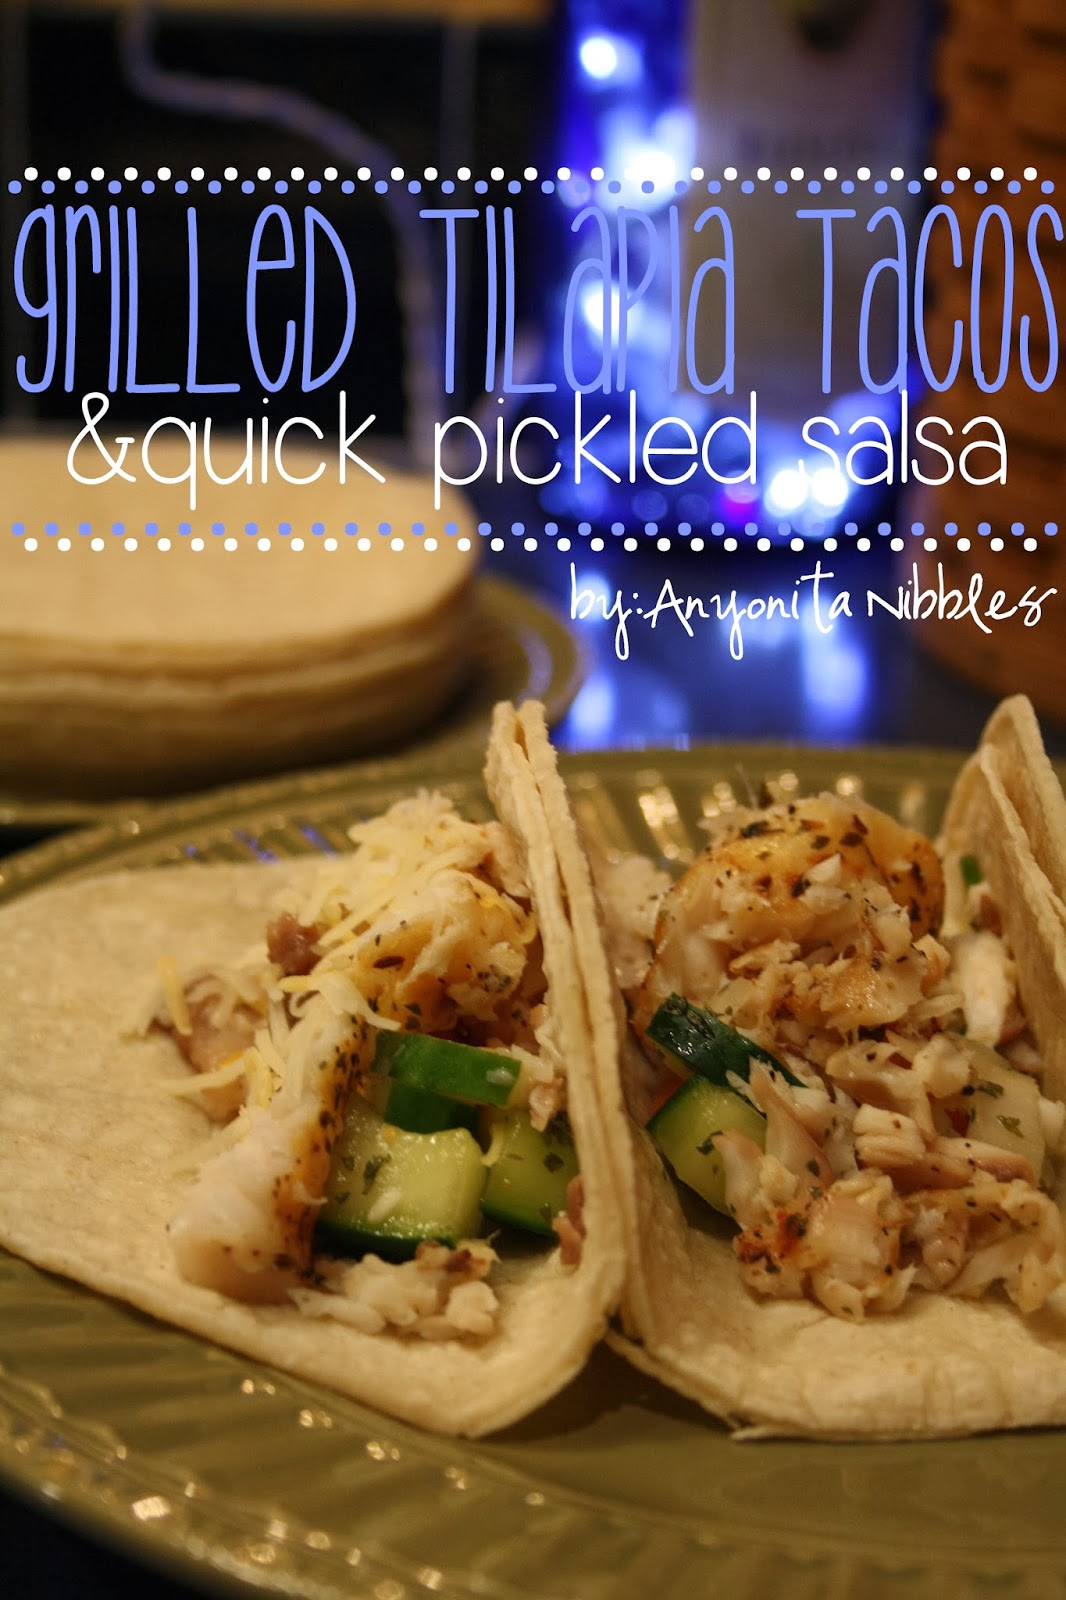 Grilled Tilapia Tacos & Quick Pickled Salsa by Anyonita Nibbles